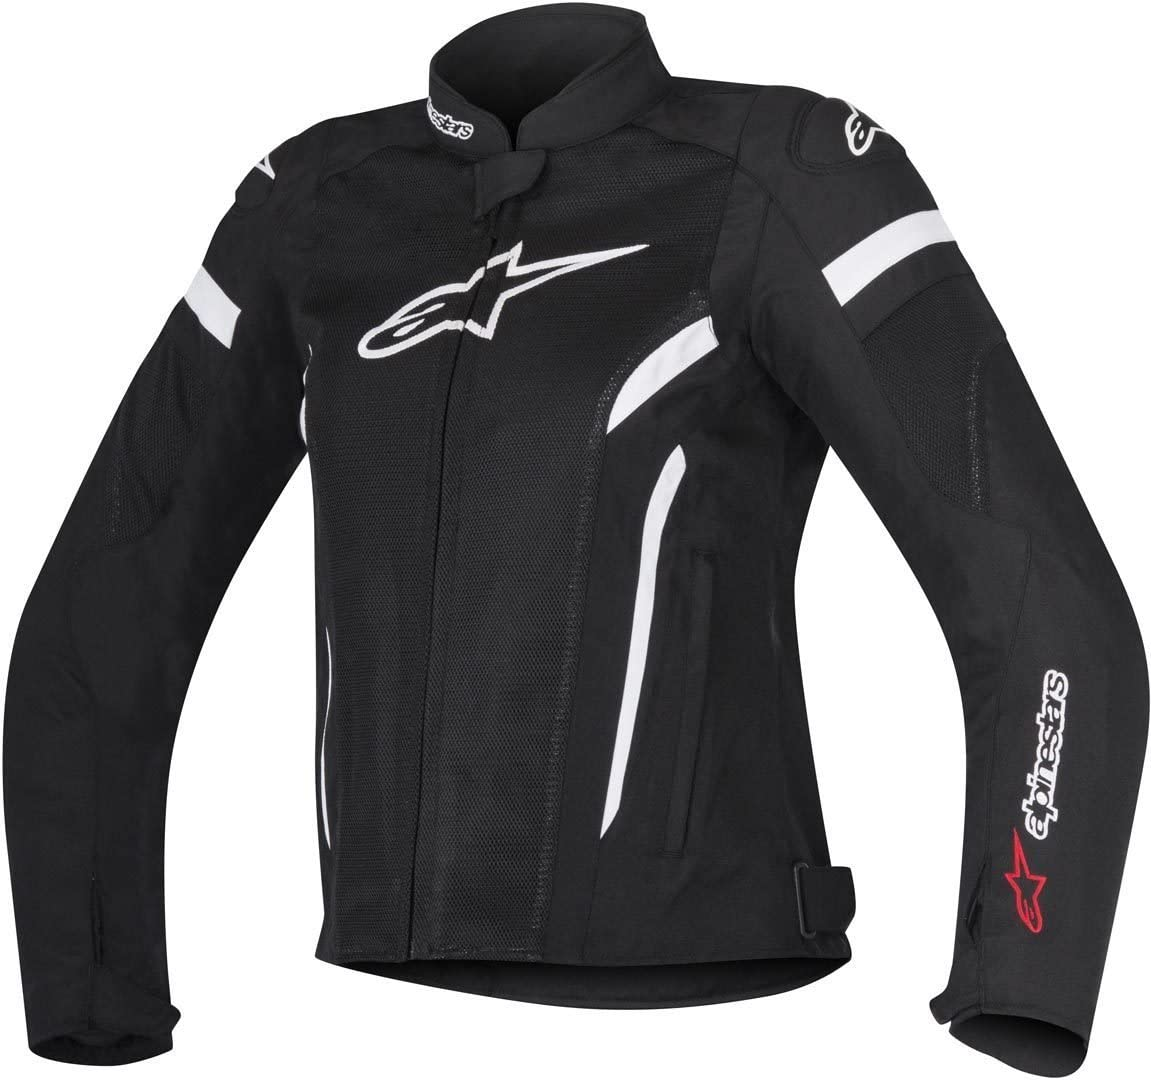 Motorcycle jackets Alpinestars Stella T-gp Plus R V2 Air Jacket Black White Black//White XS